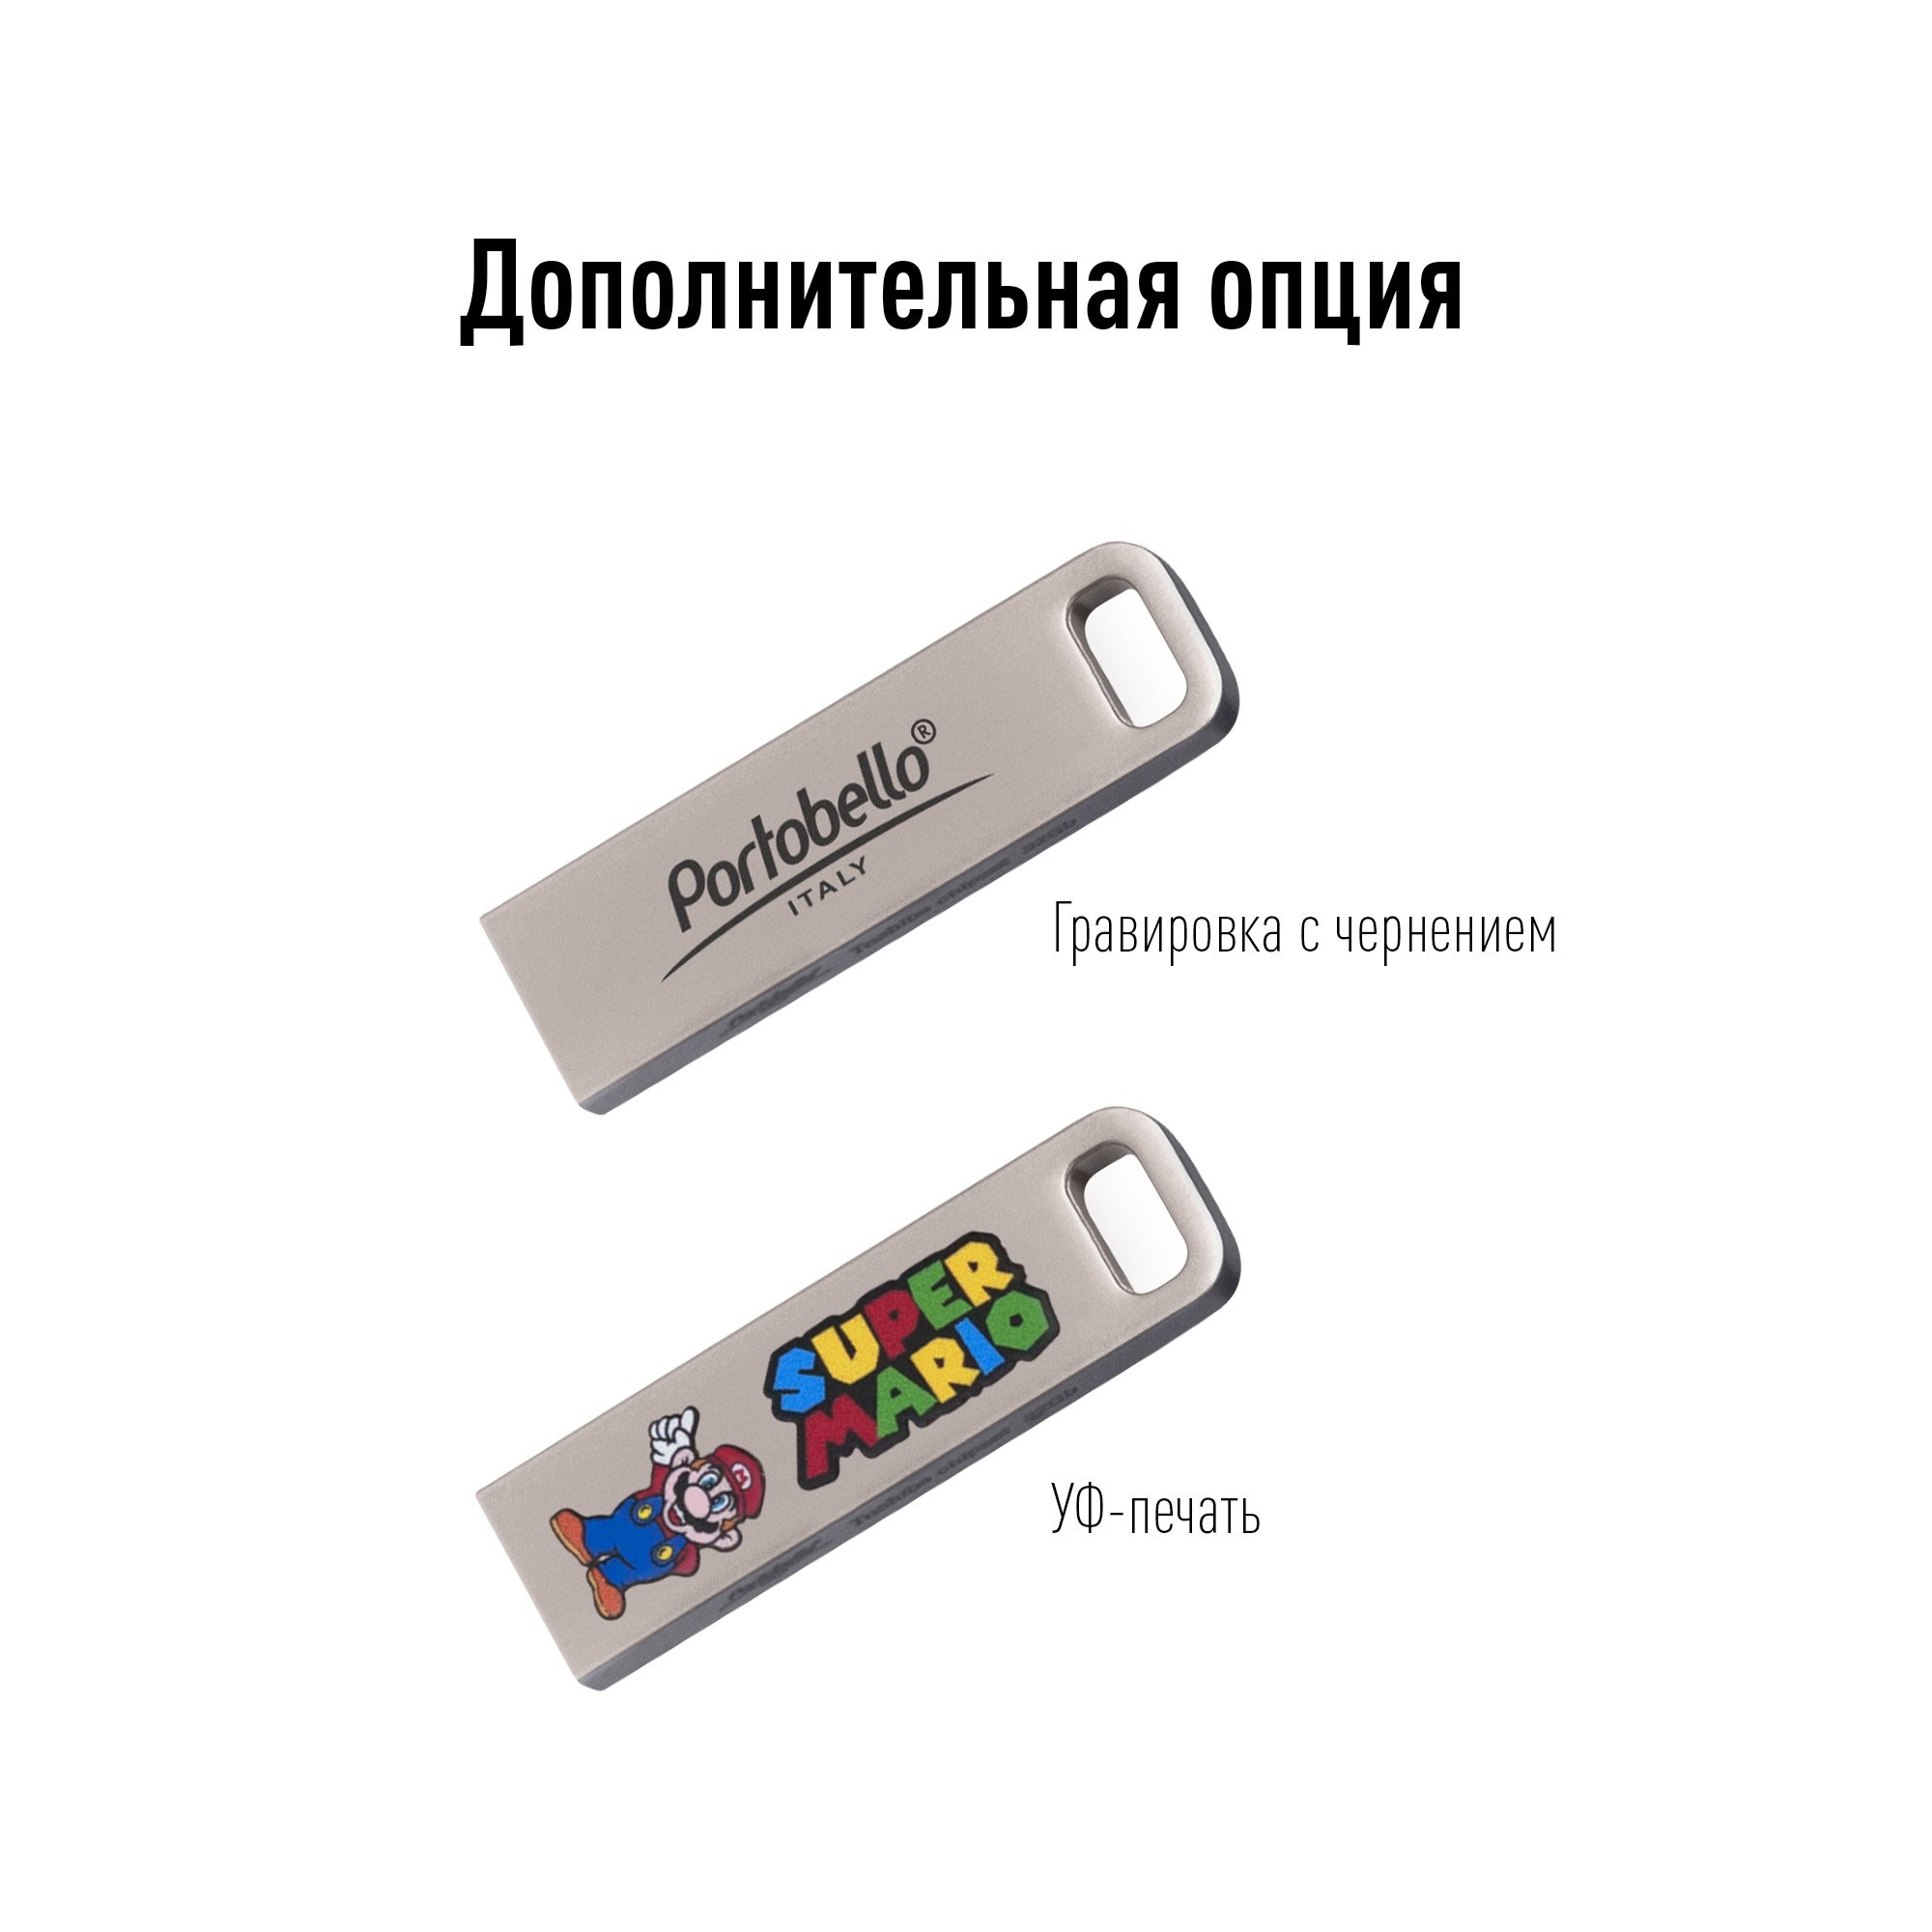 USB Флешка Portobello, Flash, 16 Gb, серебряный